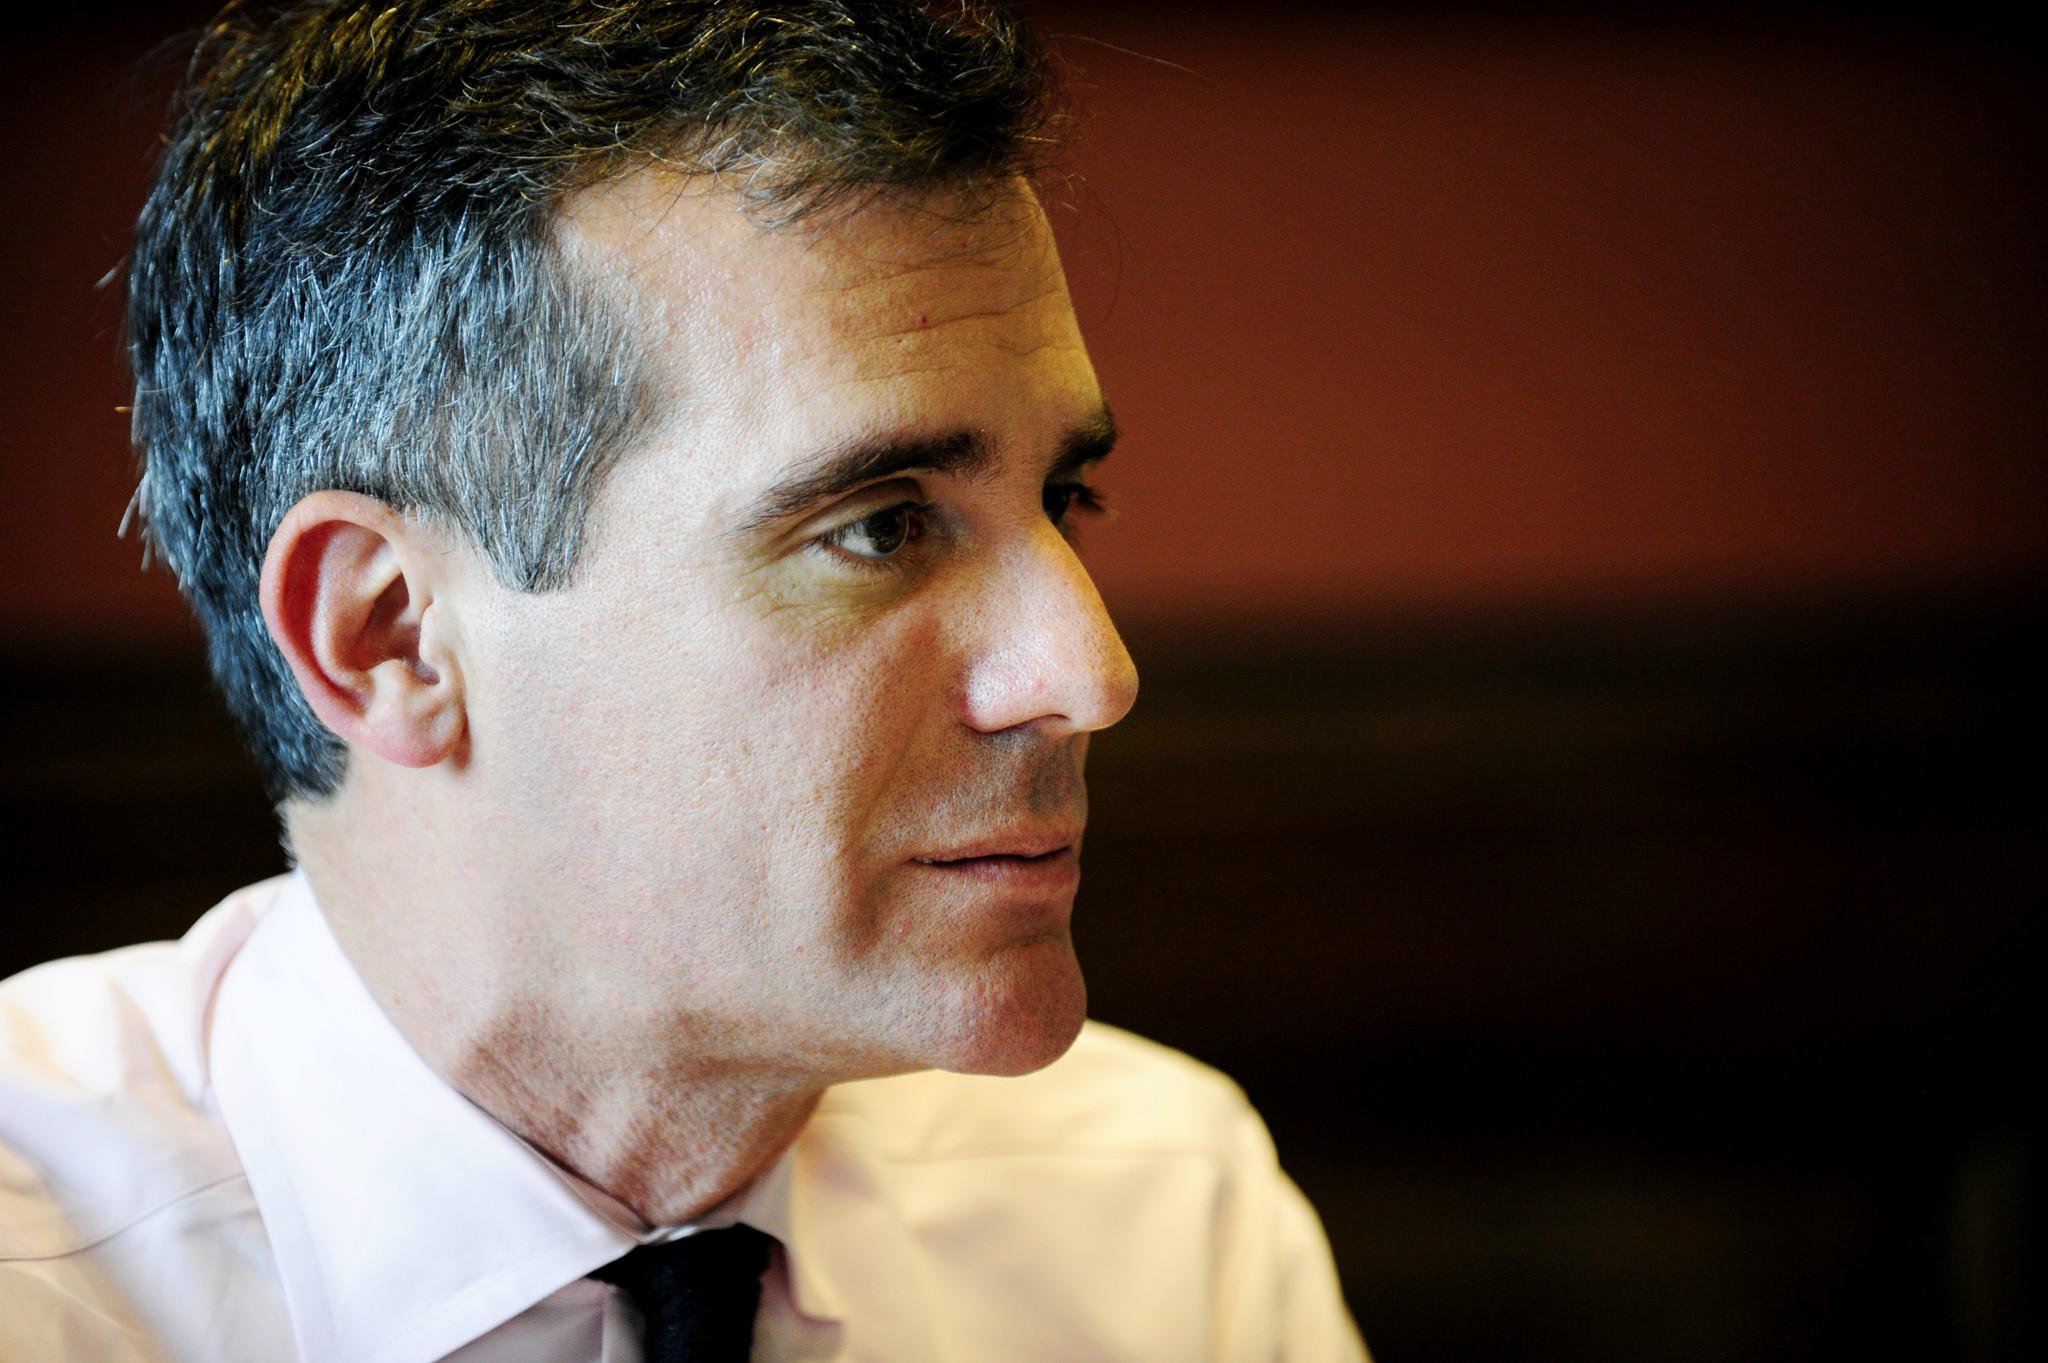 The overtime requirement is one of several obscure work rules that newly elected Mayor Eric Garcetti is pushing to reexamine as part of a new DWP labor agreement, and to fulfill a campaign pledge to reform the agency that provides power and electricity to millions of Los Angeles homes and businesses.